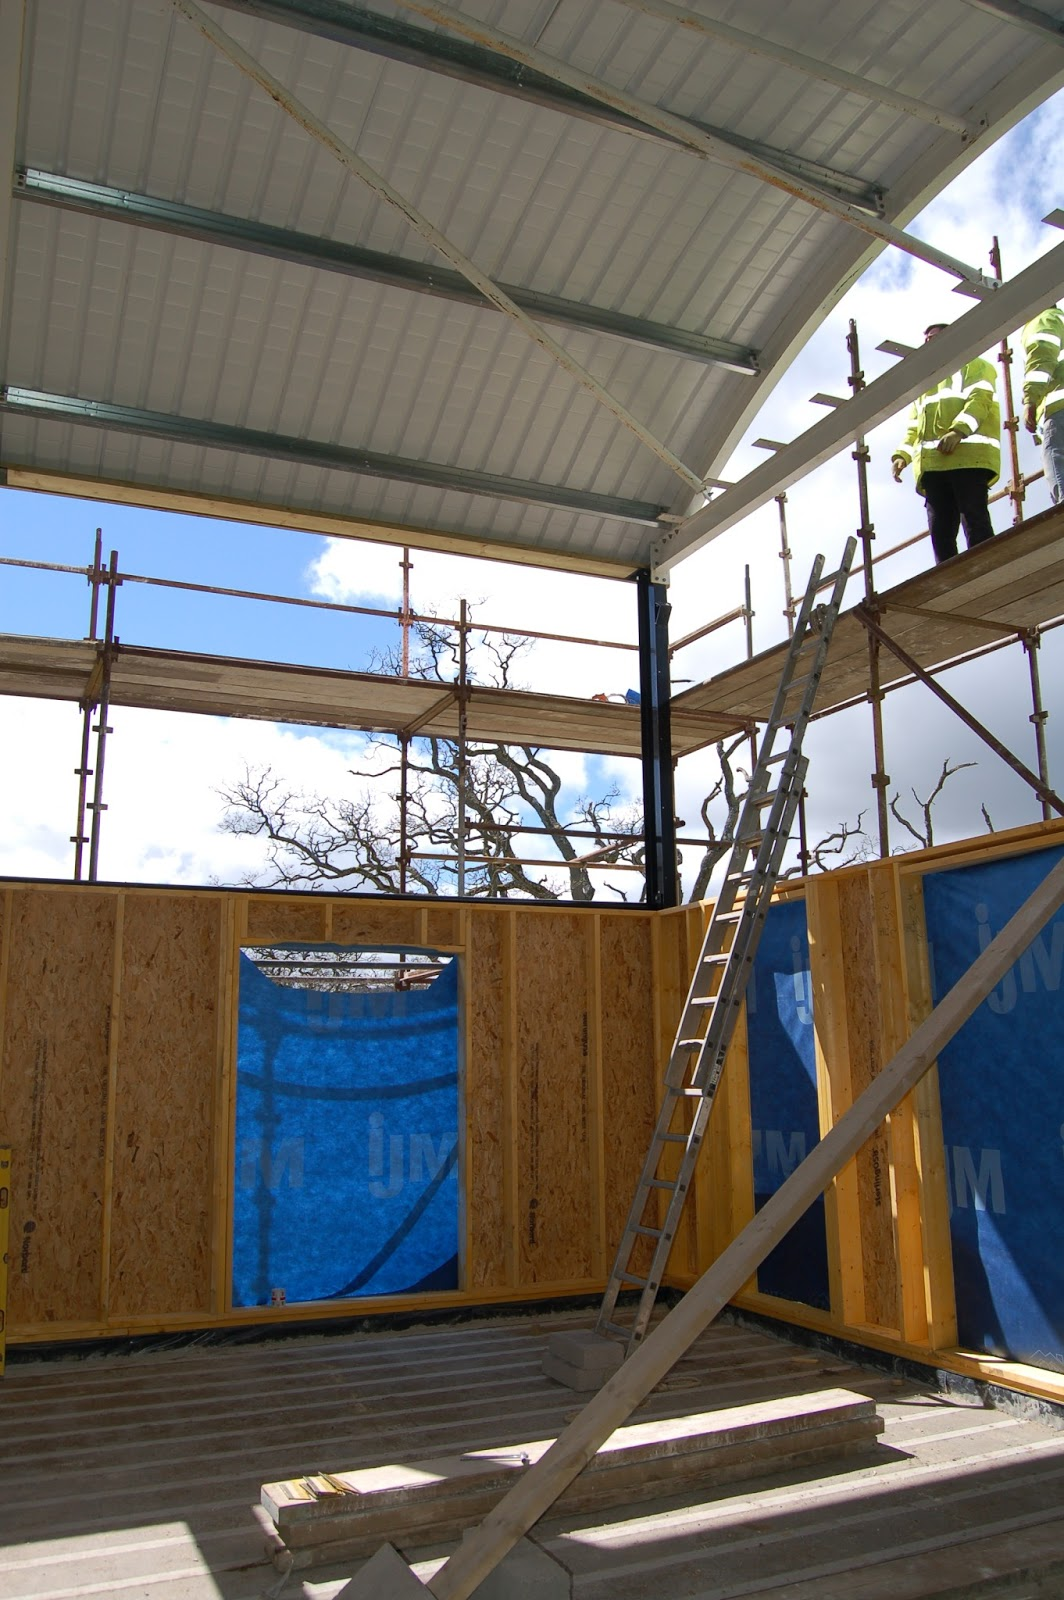 Woodhayes Installing The Roof And Liner Insulation And The Exterior Cladding